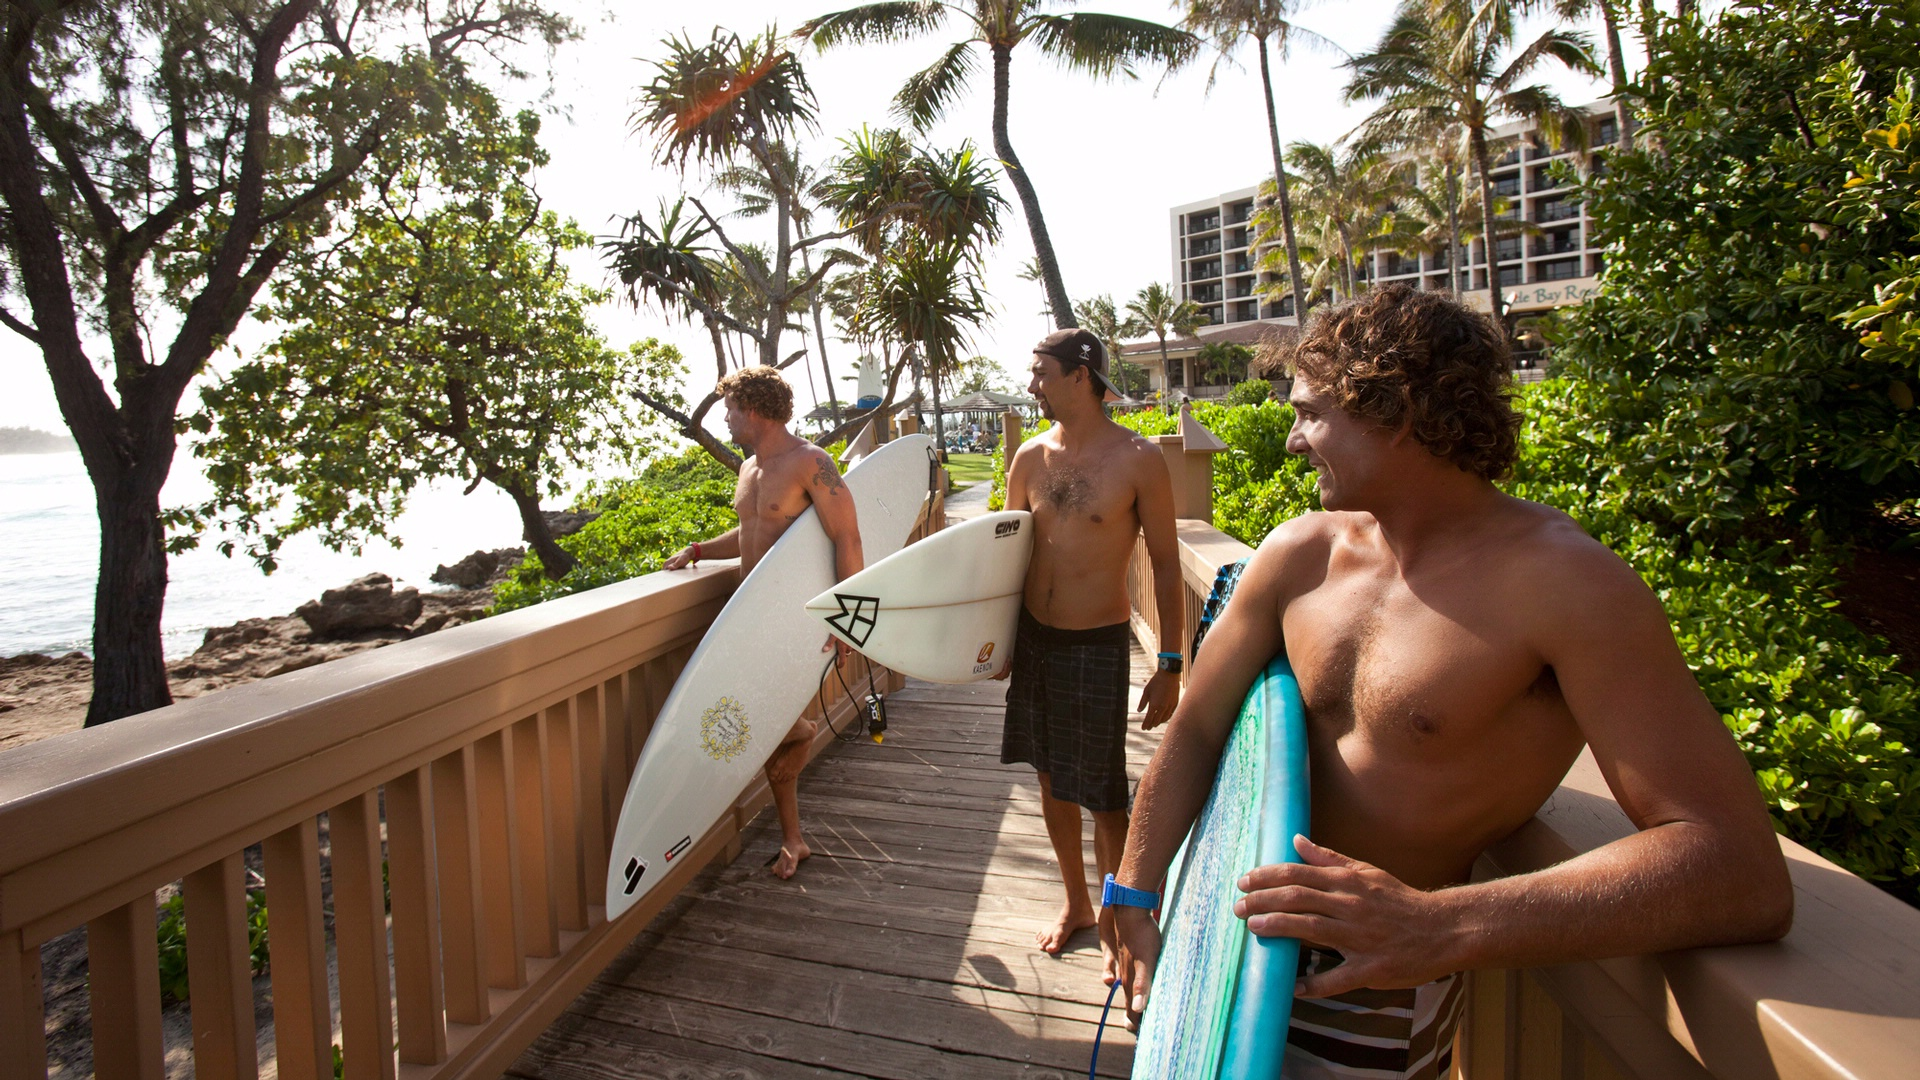 Group of 3 friends with surfboard looking out over water